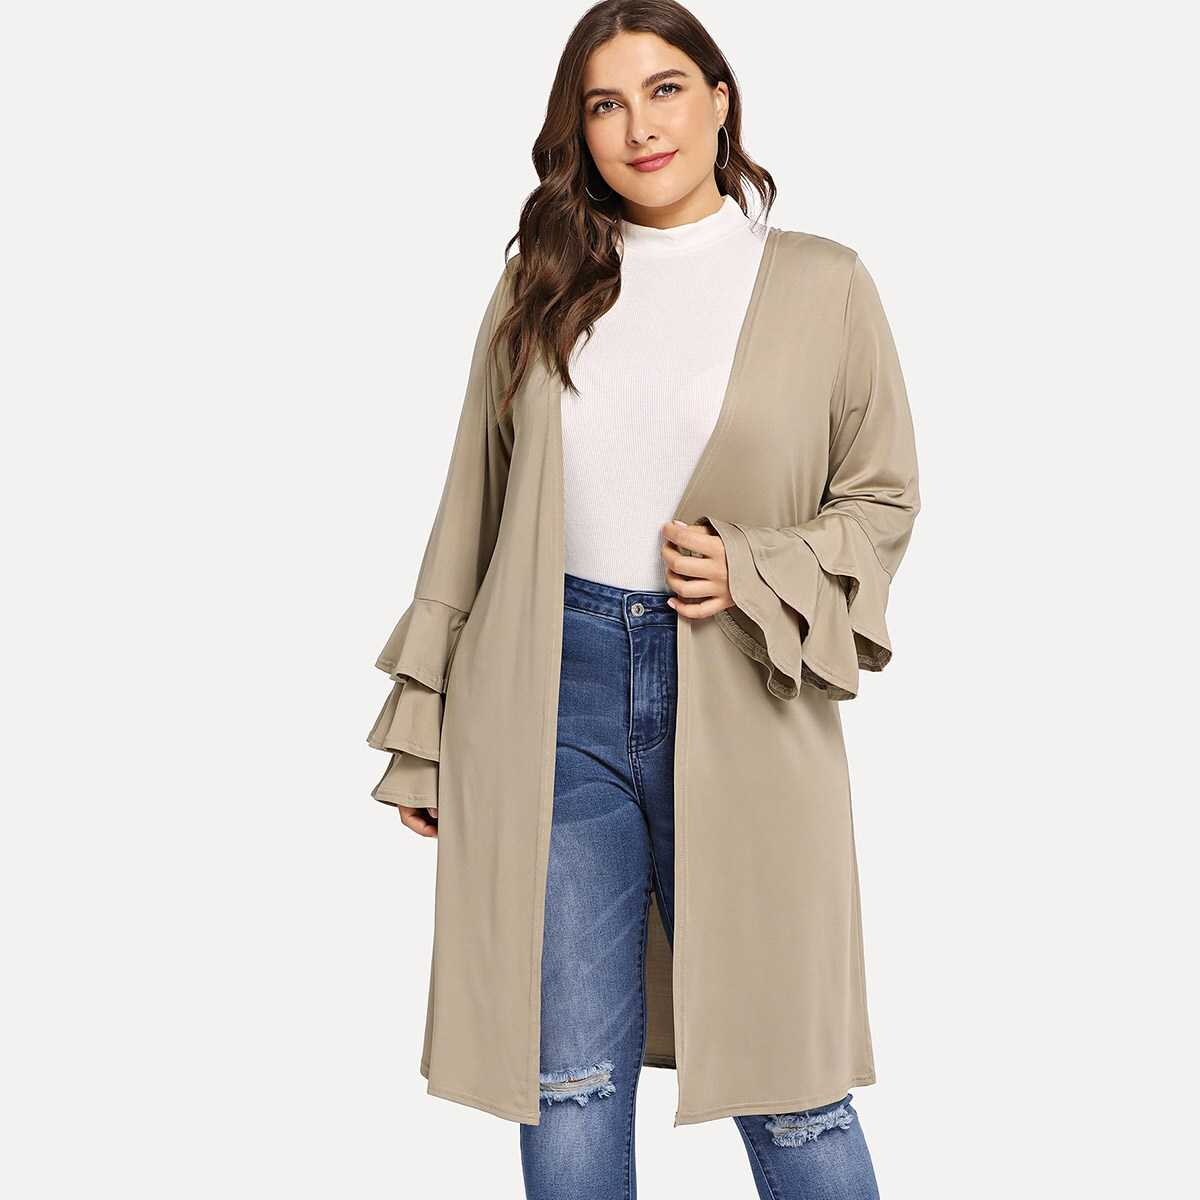 Plus Layered Sleeve Solid Coat - Shein - GOOFASH